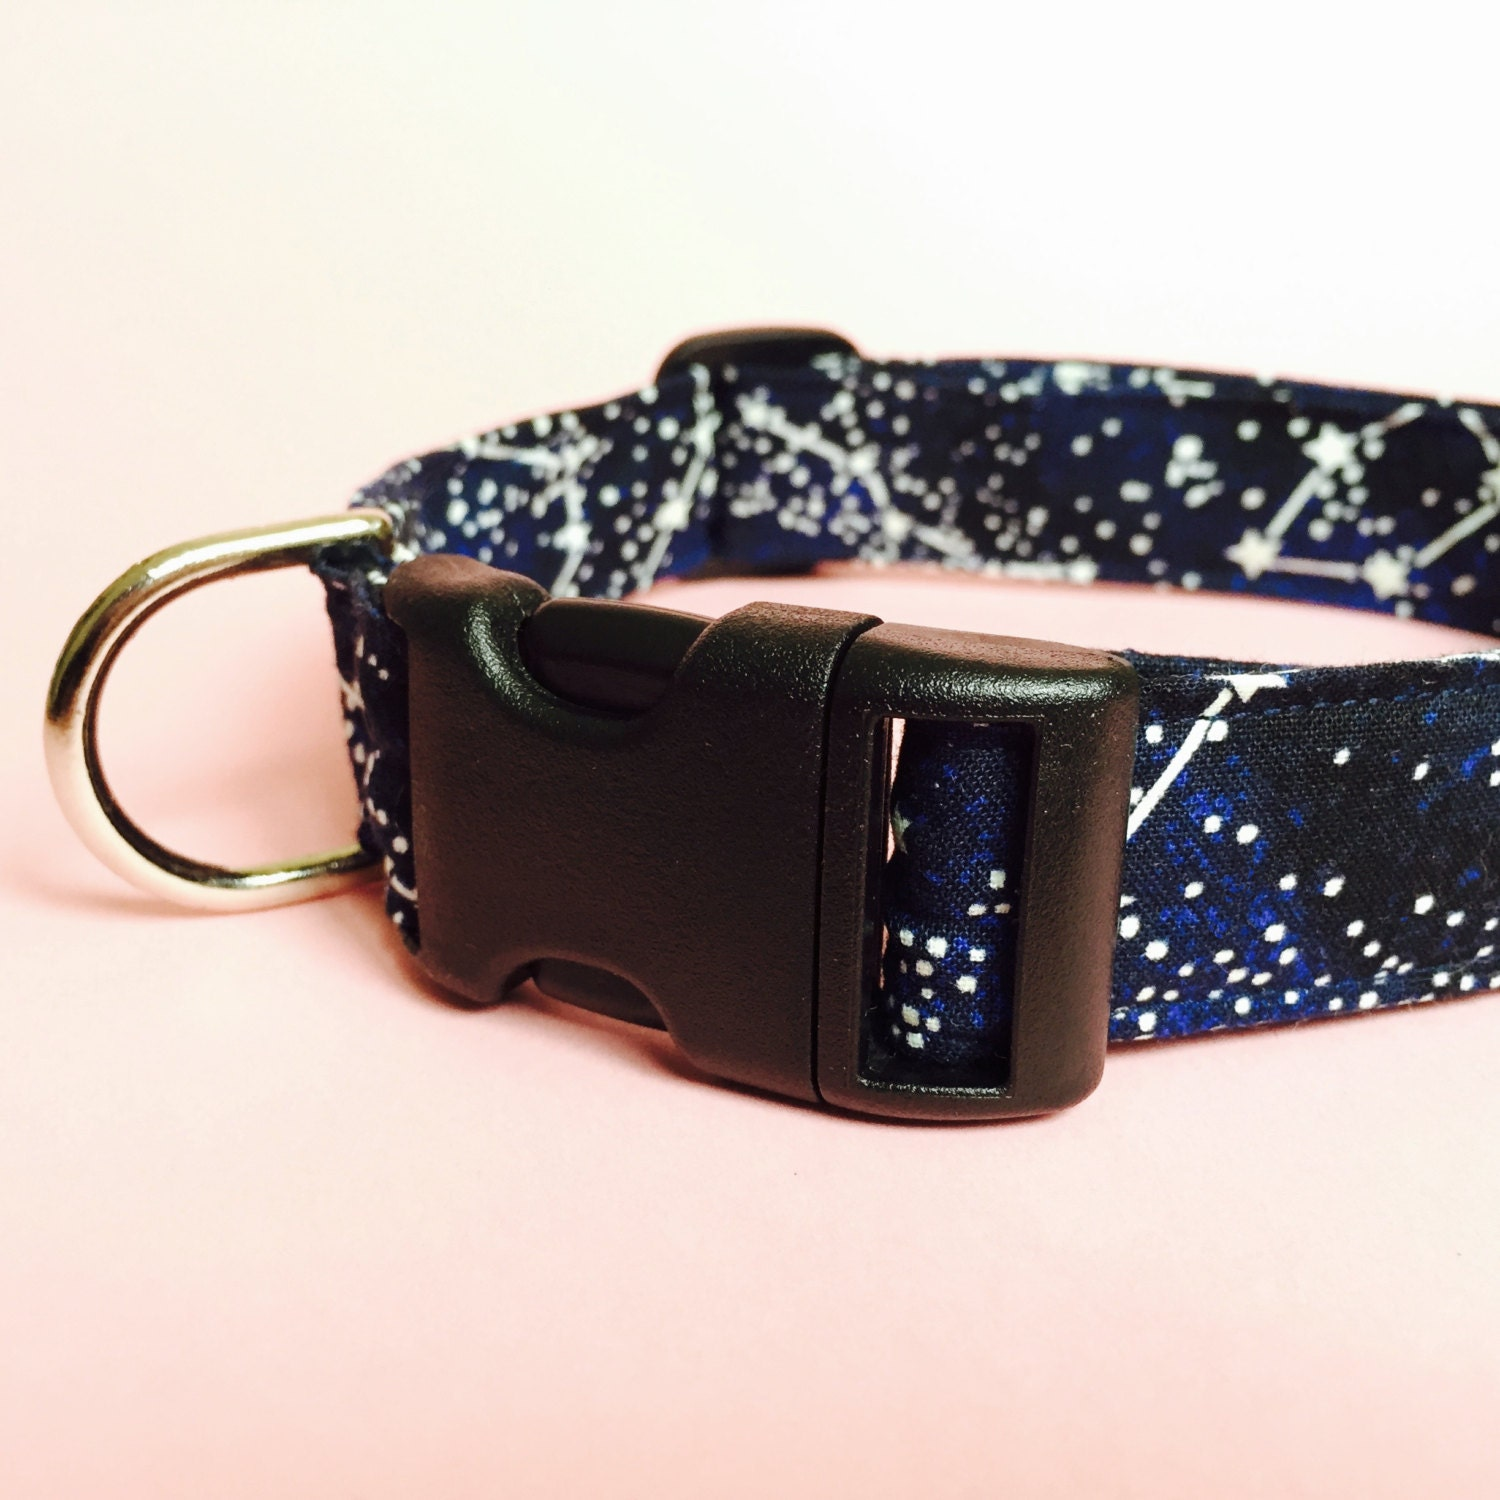 Dog E Glow Collar Reviews